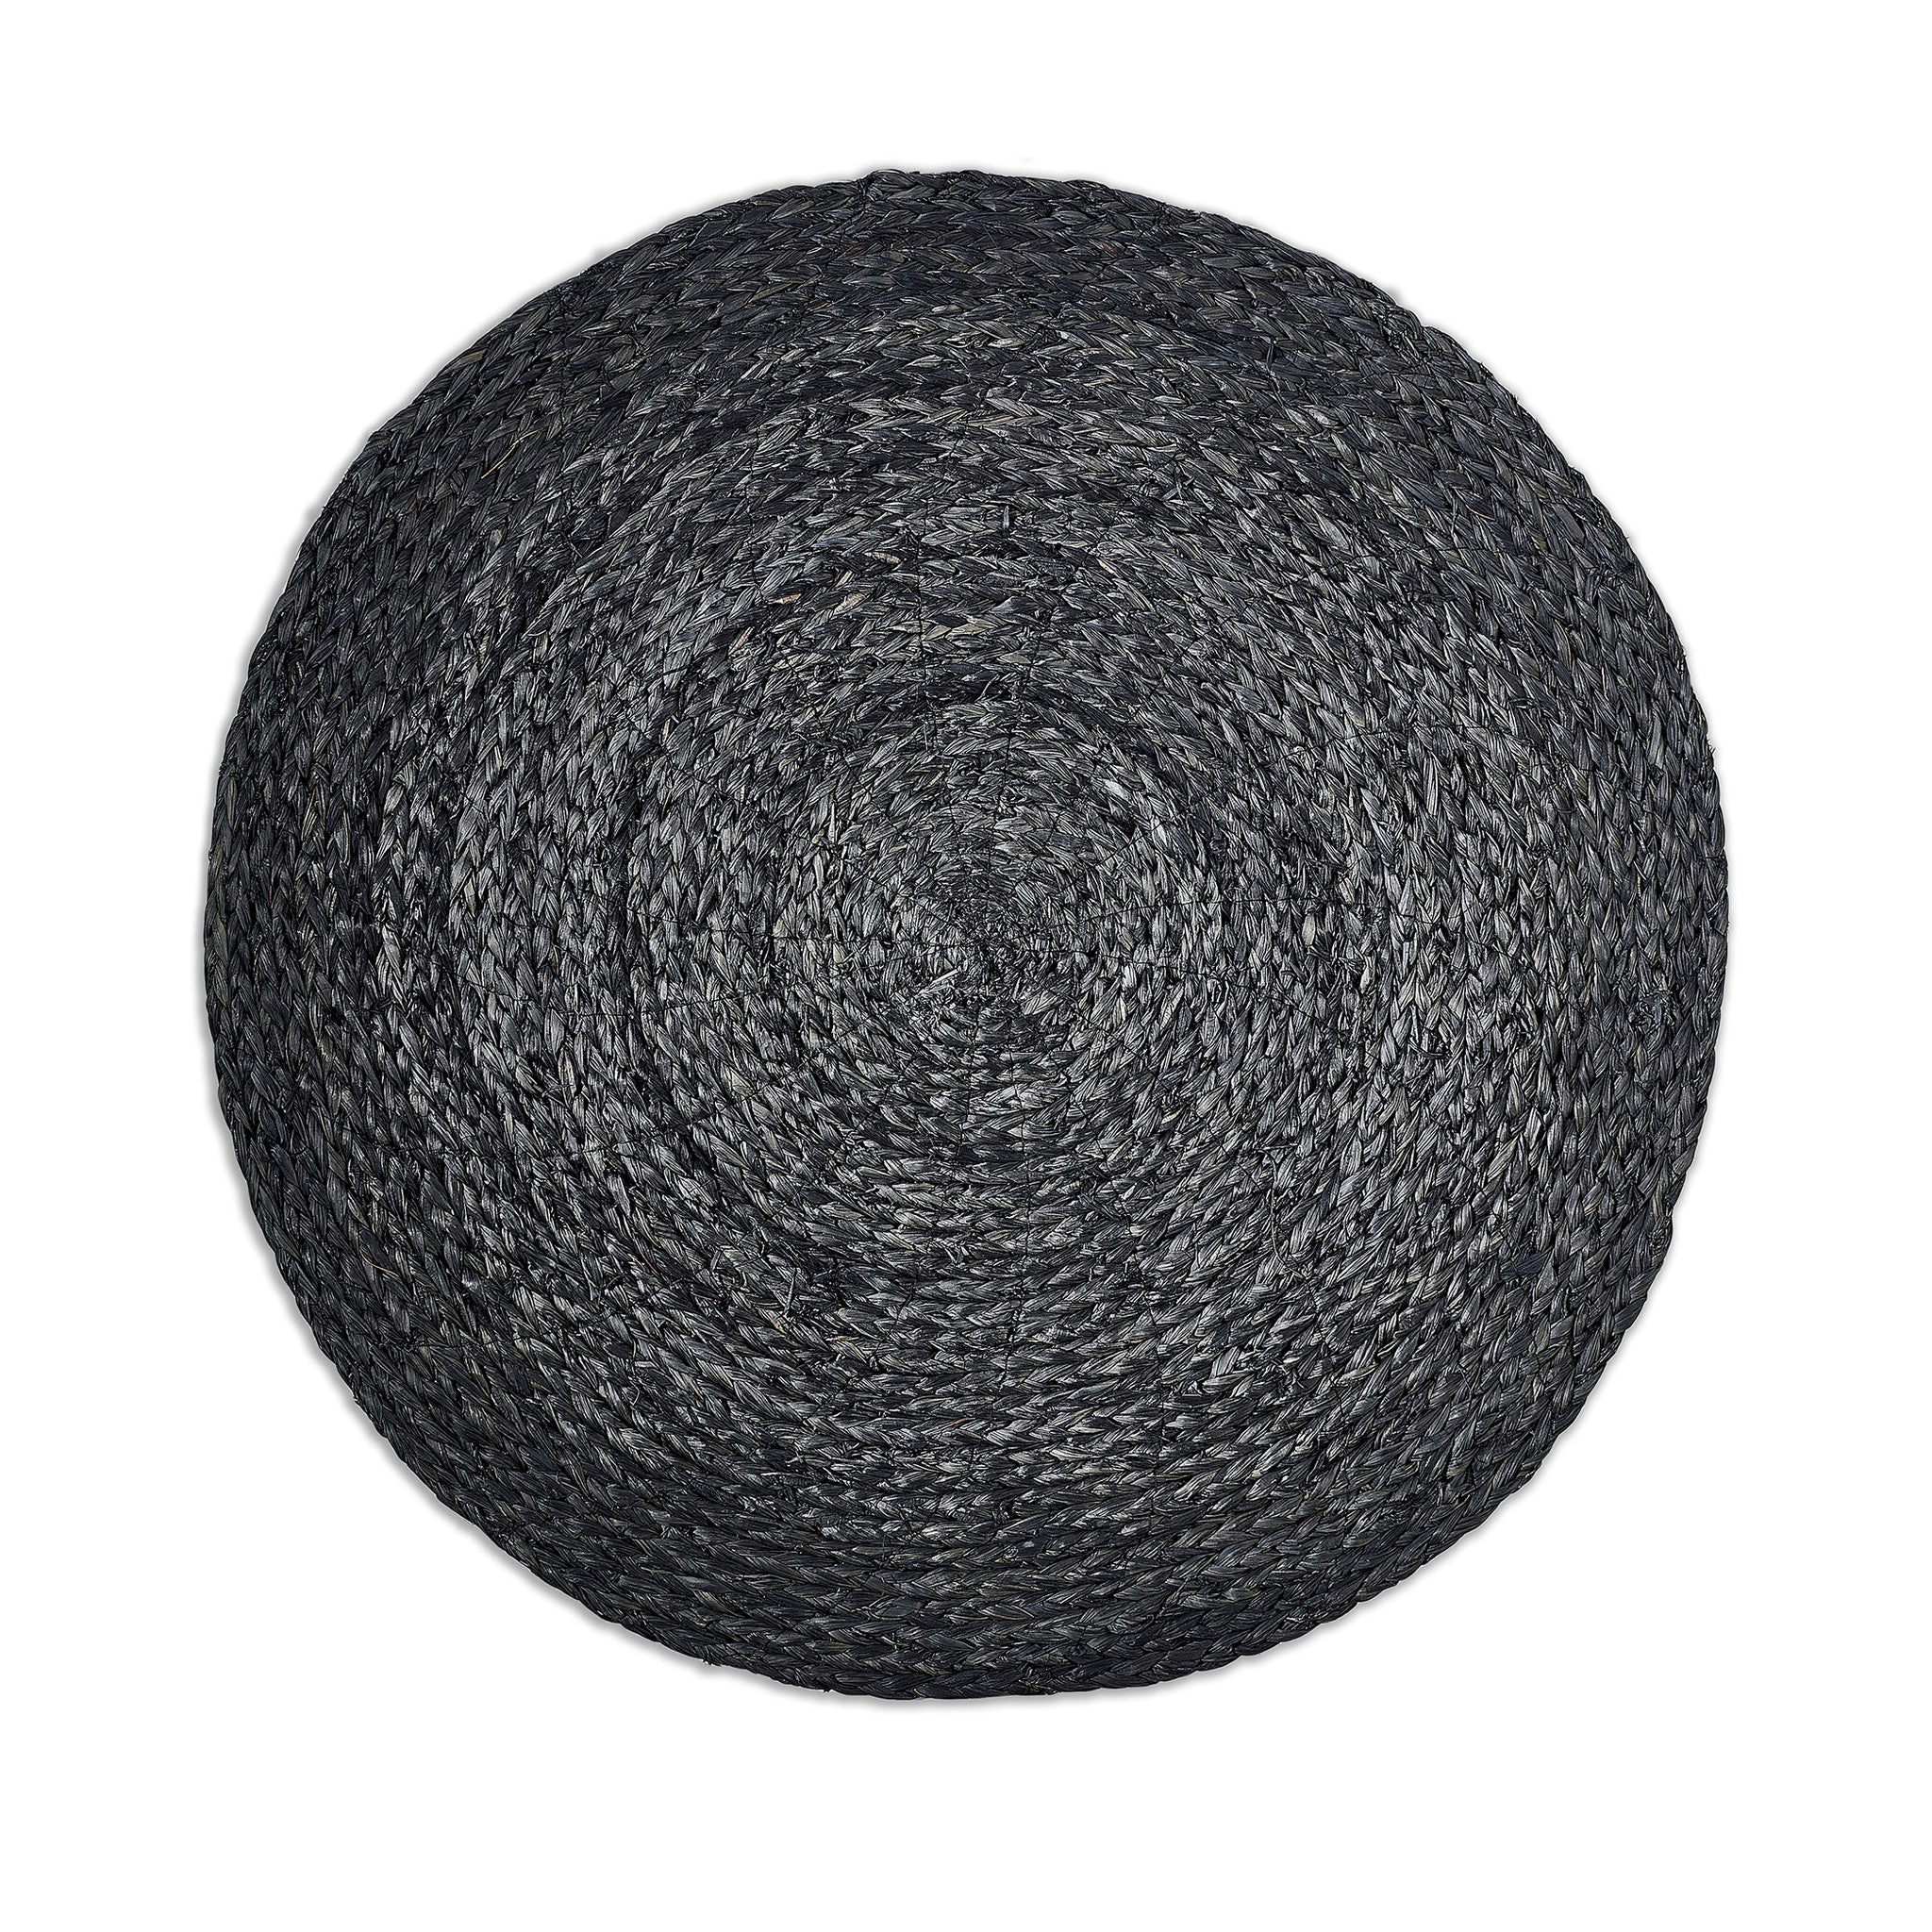 Round Raffia Placemat in Black